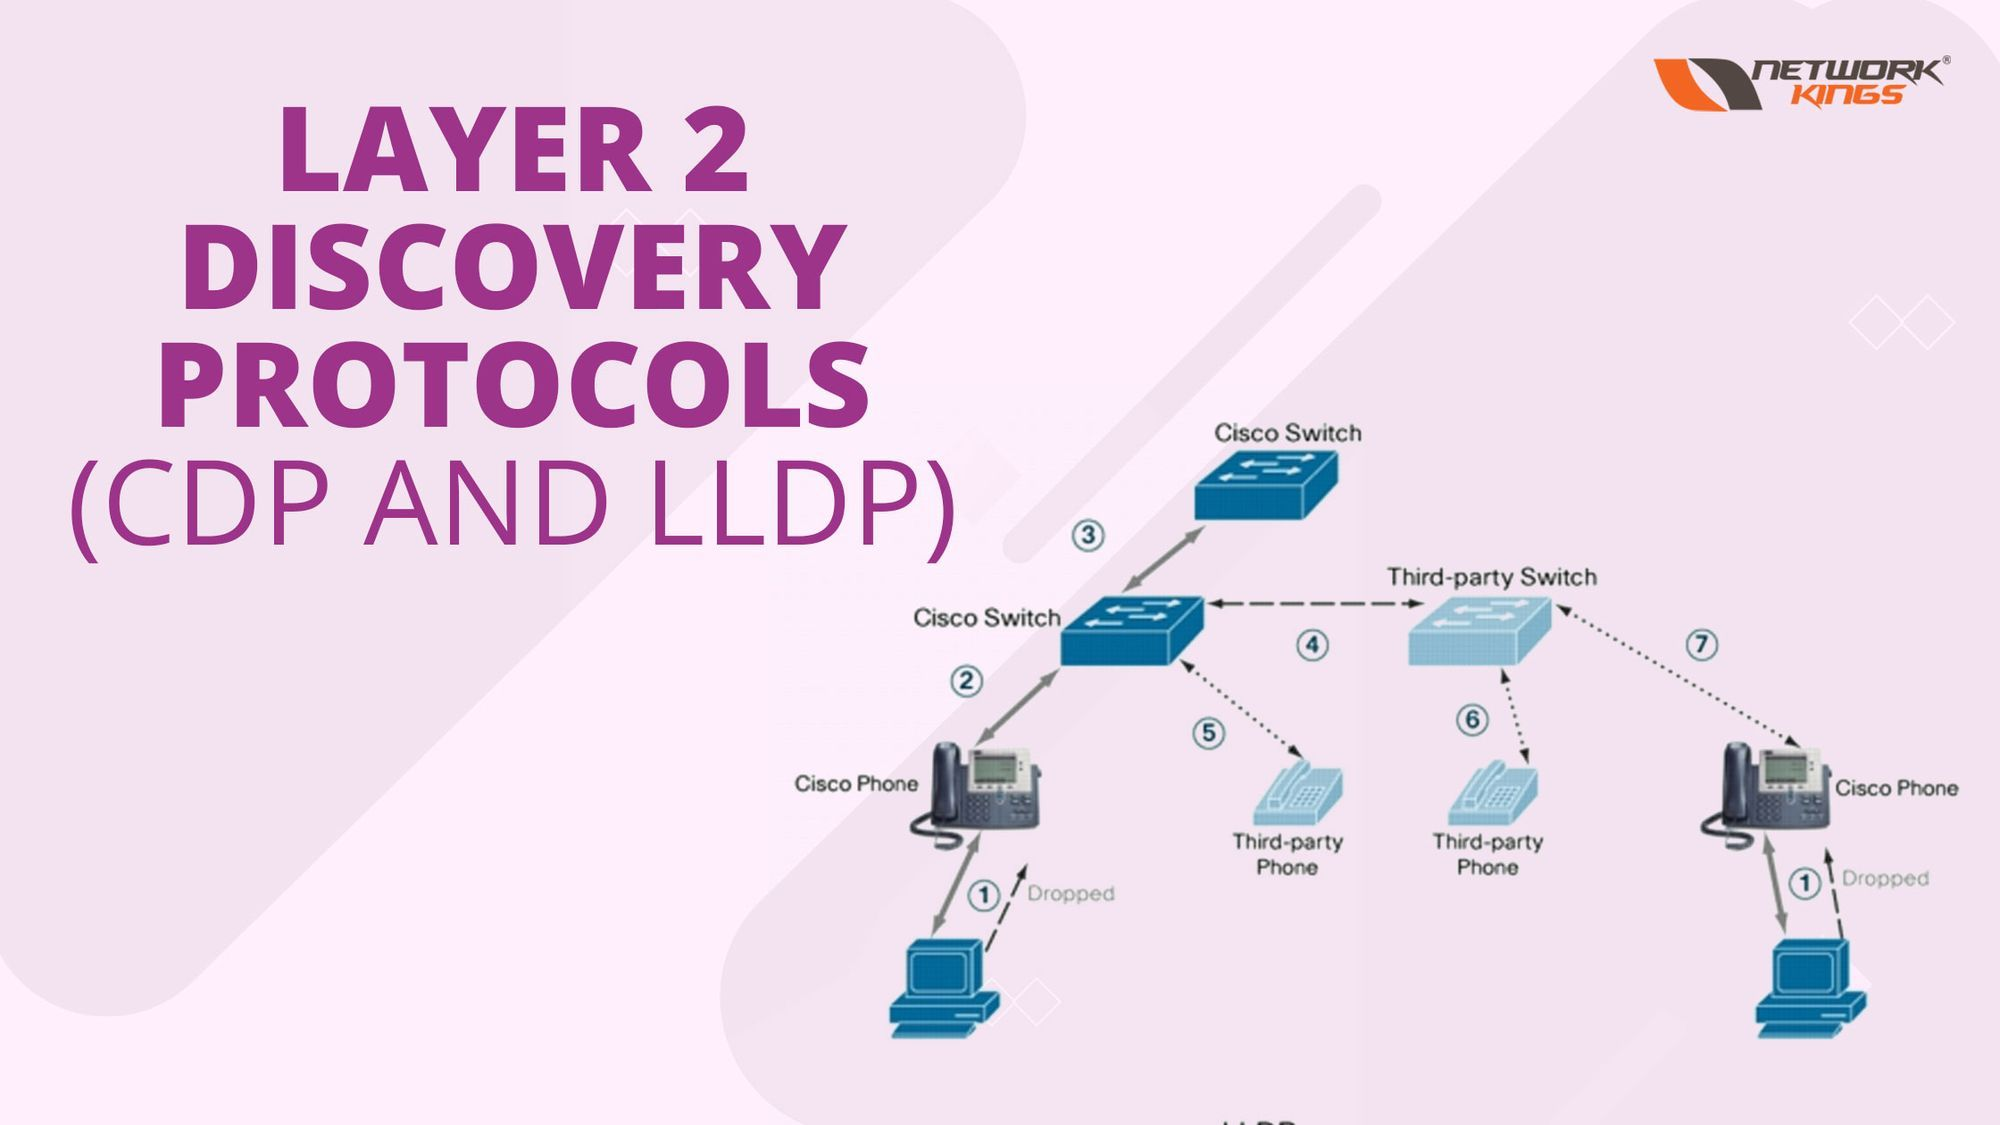 Layer 2 discovery protocols (CDP and LLDP)